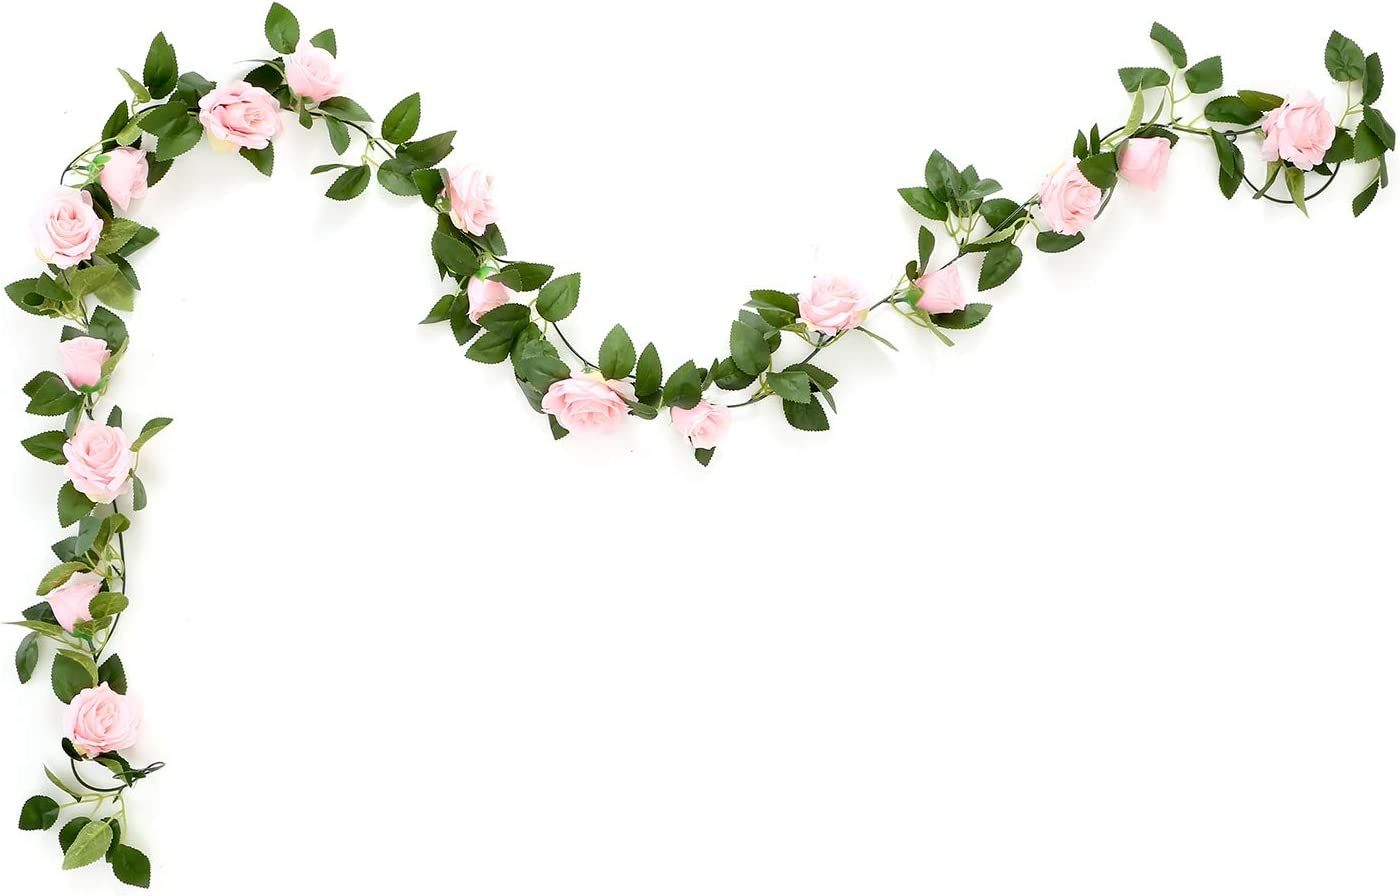 MEHELANY Artificial Rose Vine Flowers with Green Leaves 7.5ft Fake Silk Rose Hanging Vine Flowers Garland Ivy Plants for Home Wedding Party Garden Wall Decoration (Pink) …